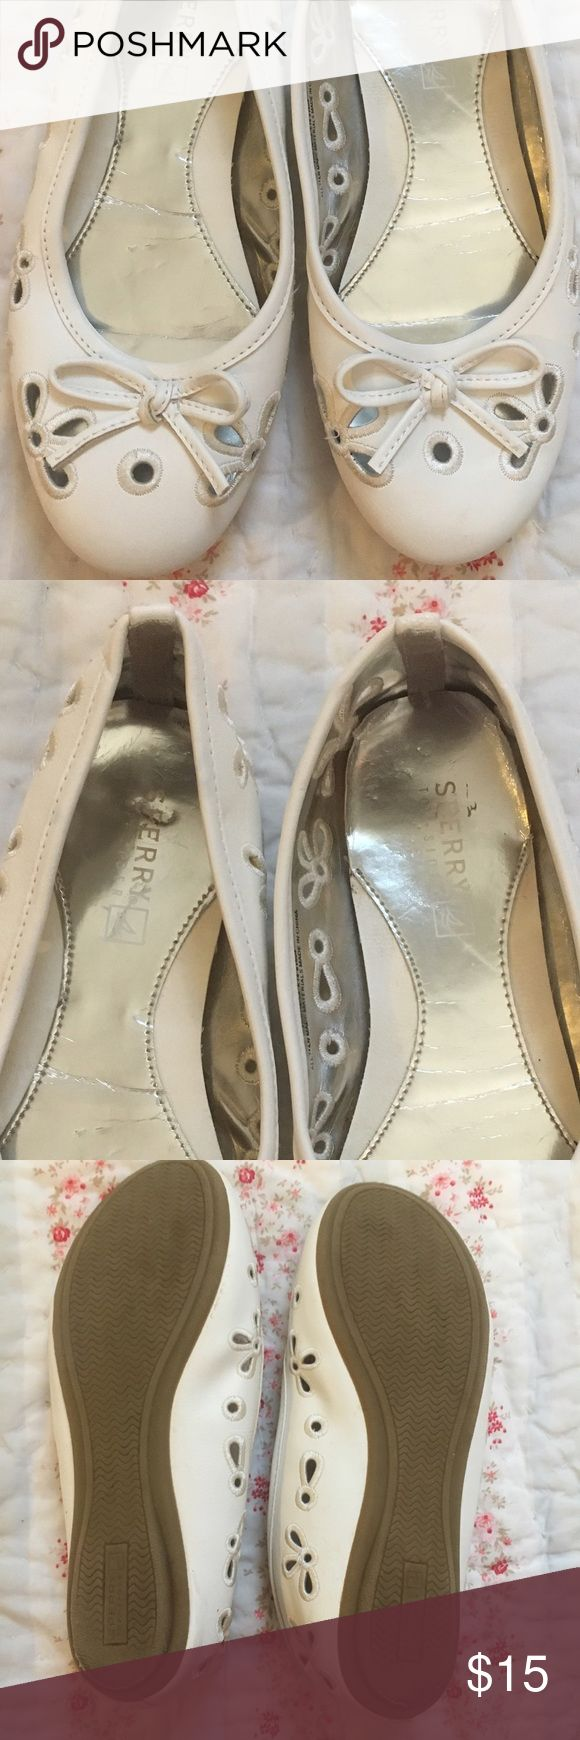 Girls white sperry flats Very cute for spring! Sperry Top-Sider Shoes